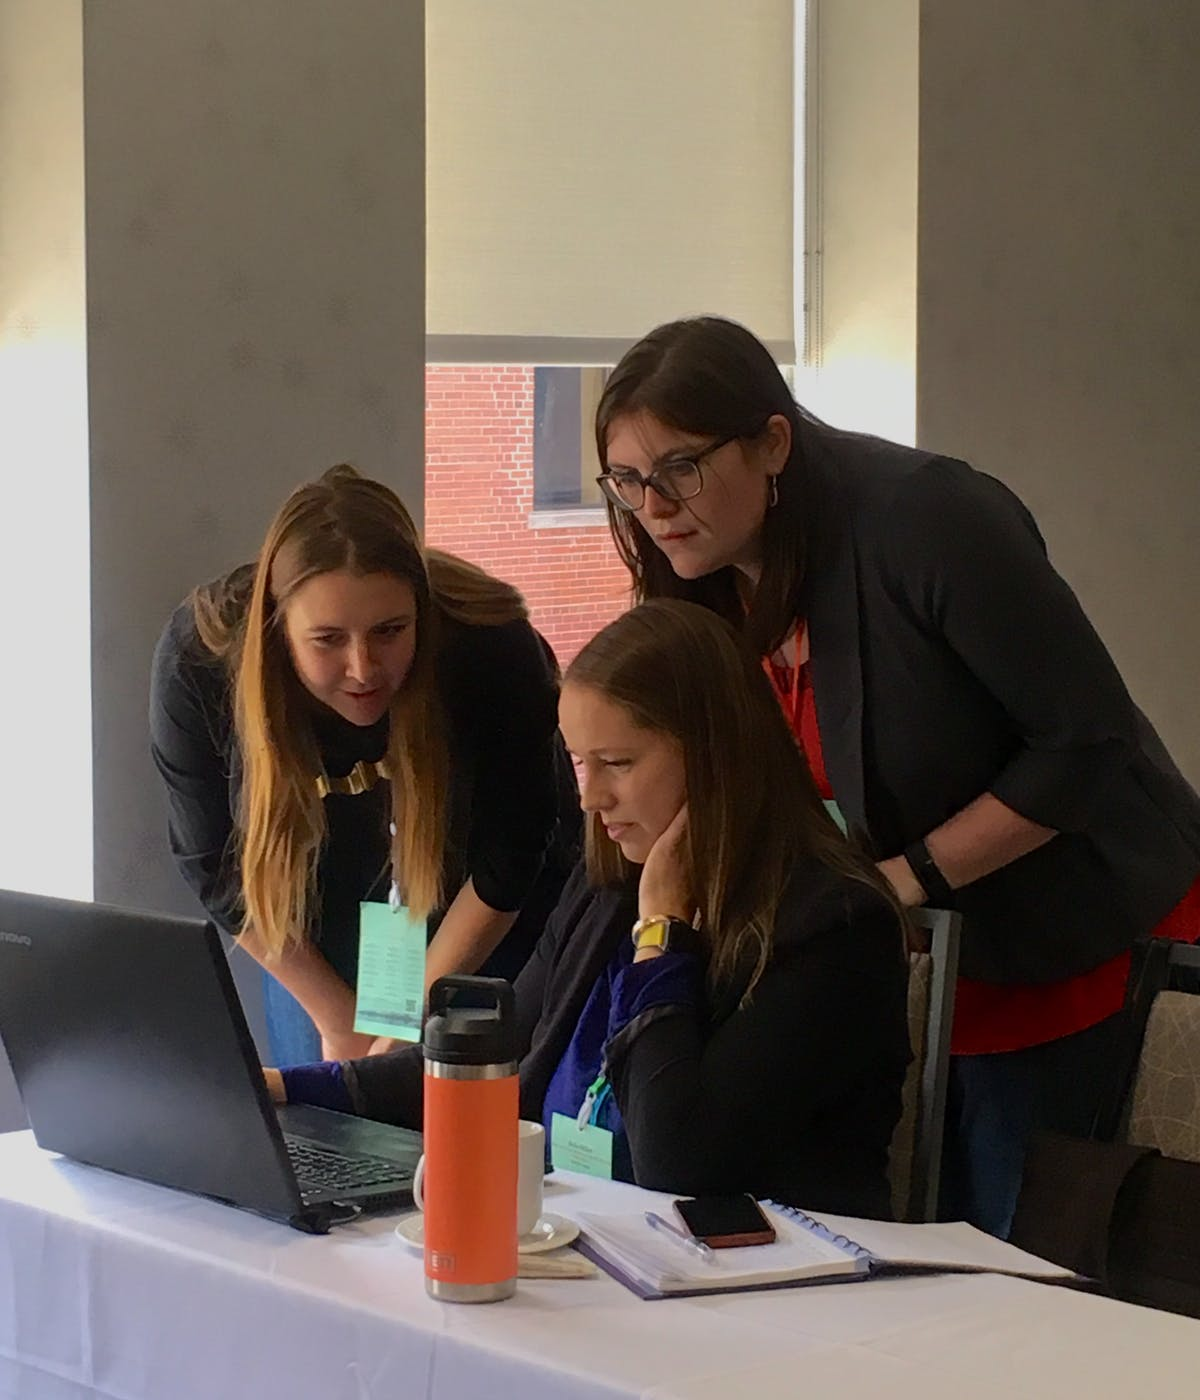 Chelsea Lobson, Emma Wattie, and Keila Miller looking at Atlantic DataStream on a laptop during a datathon